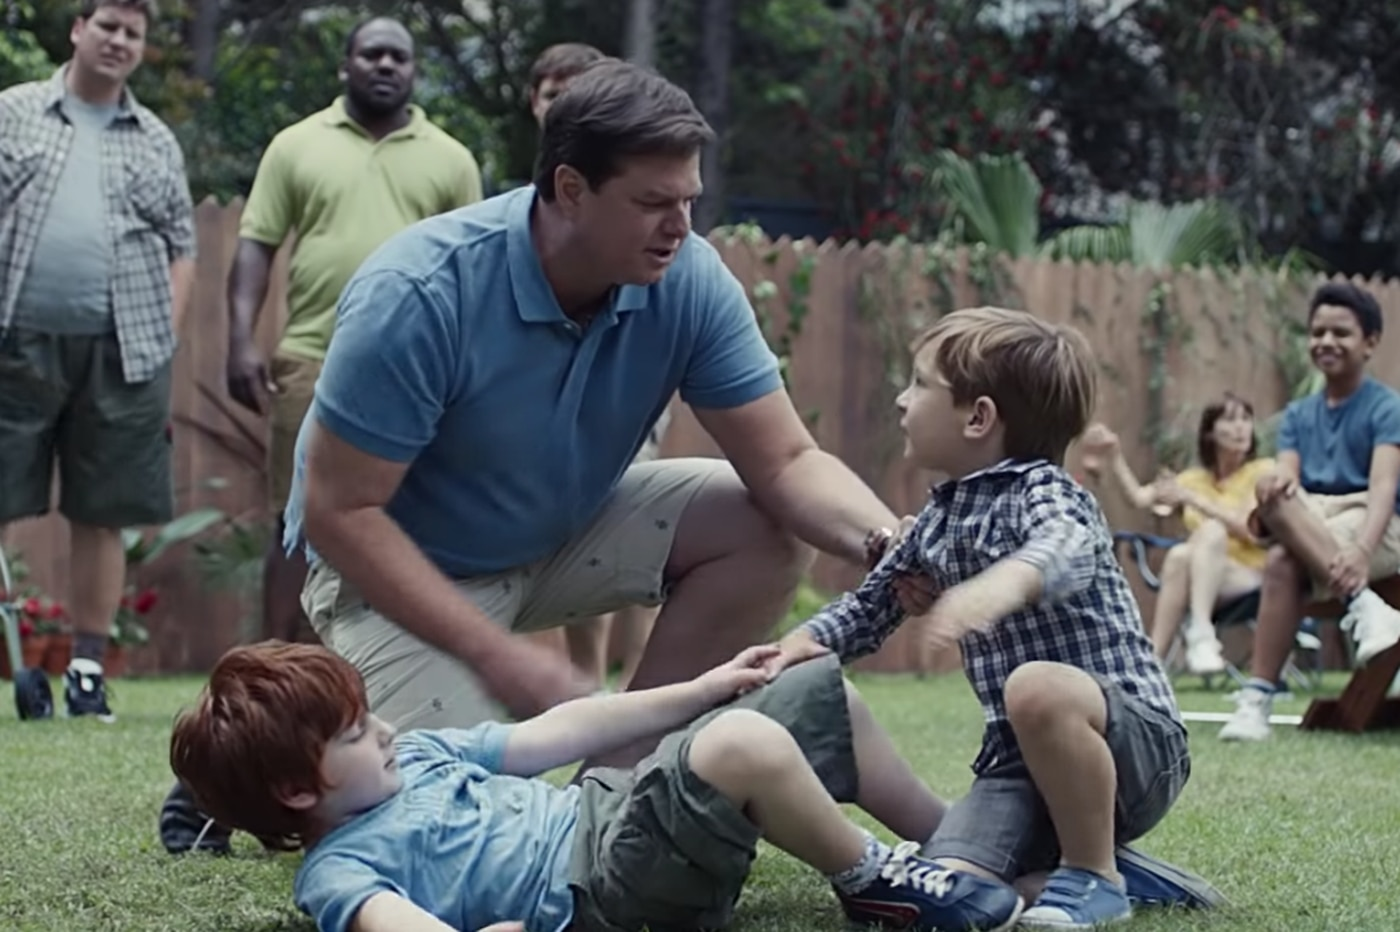 The myth of toxic masculinity: From Gillette ad to new male-centric guidelines for psychologists | Christine Flowers